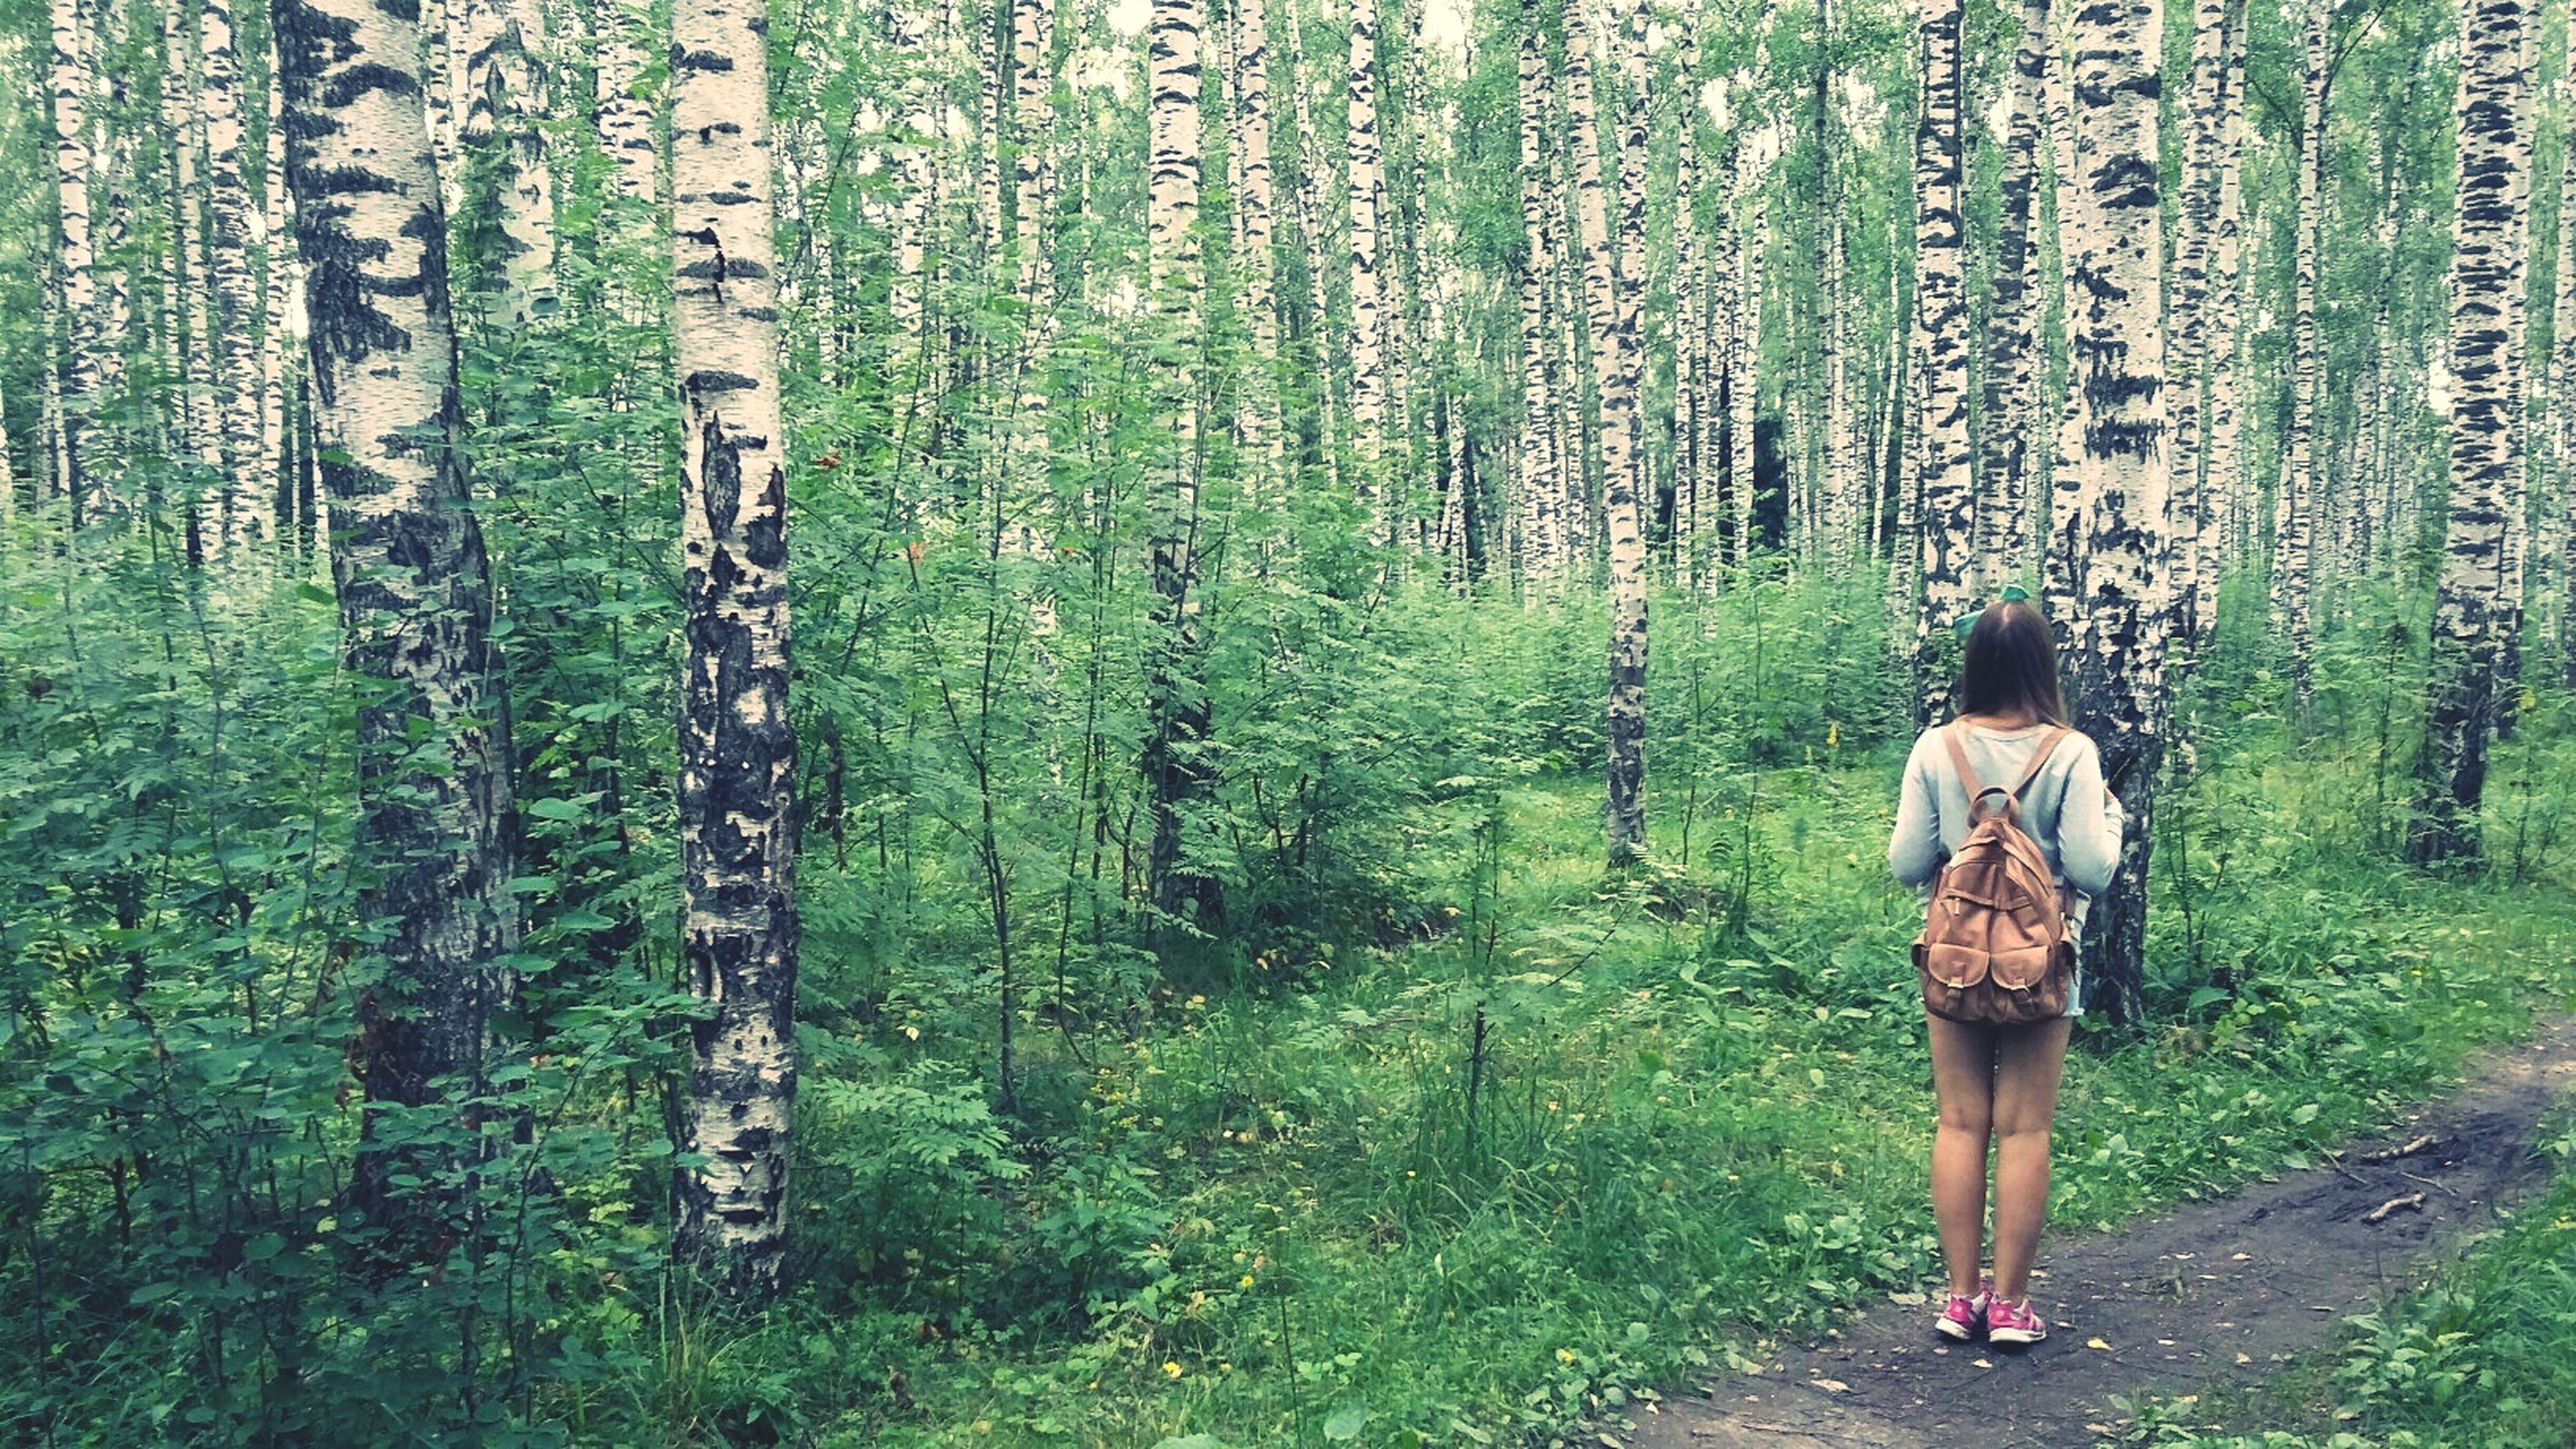 tree, full length, lifestyles, casual clothing, leisure activity, standing, rear view, growth, tree trunk, green color, grass, forest, nature, plant, person, tranquility, day, walking